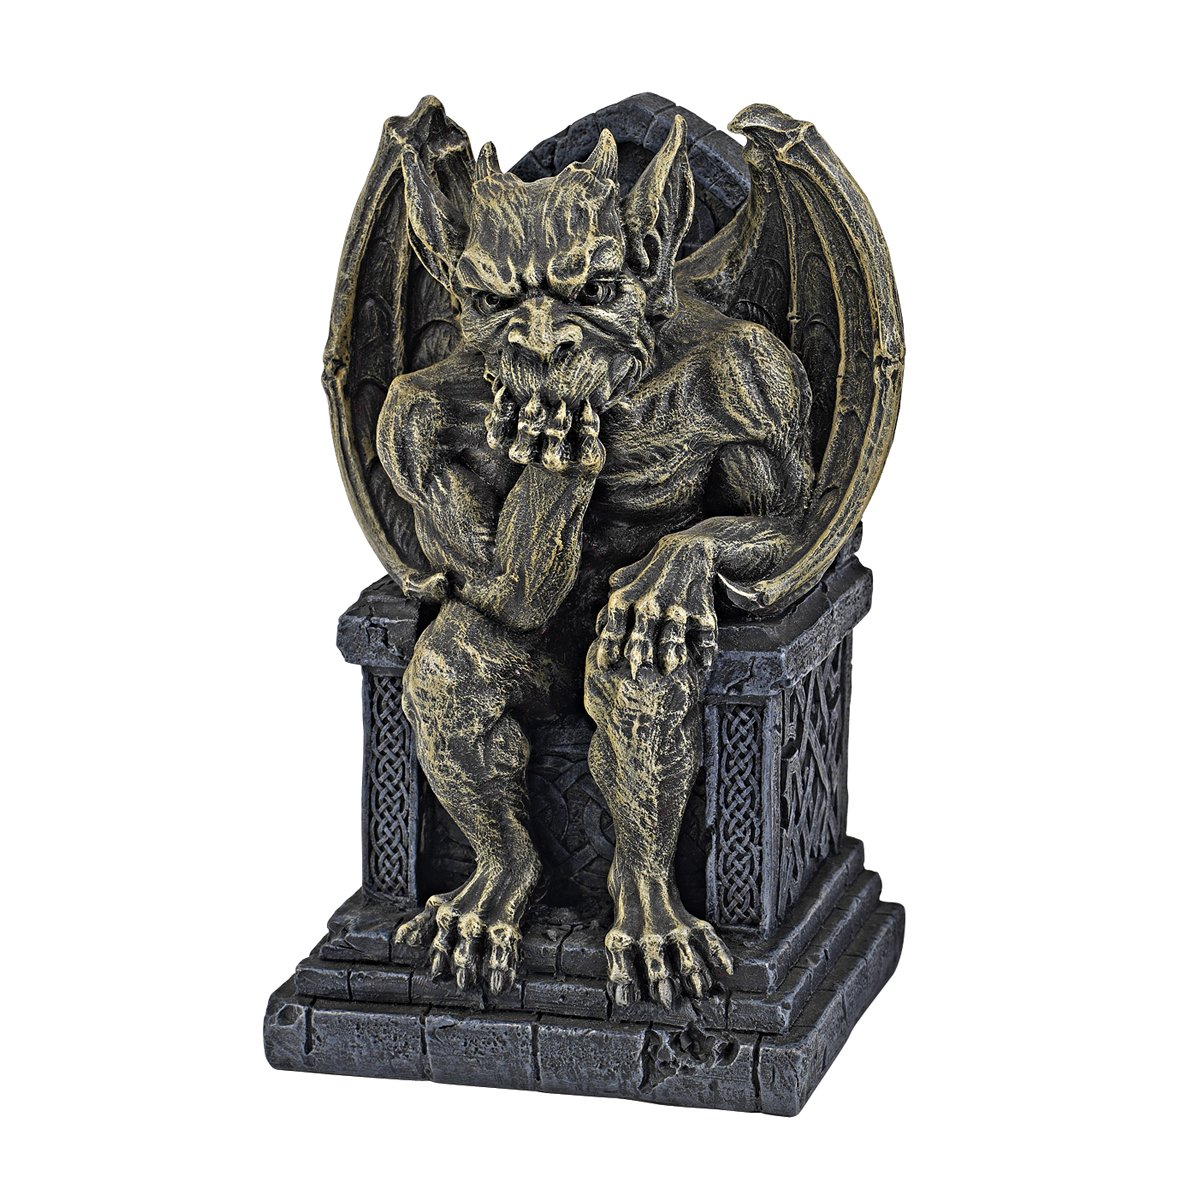 Design Toscano CL5565 Hemlock's Gargoyle Throne Statue - Small